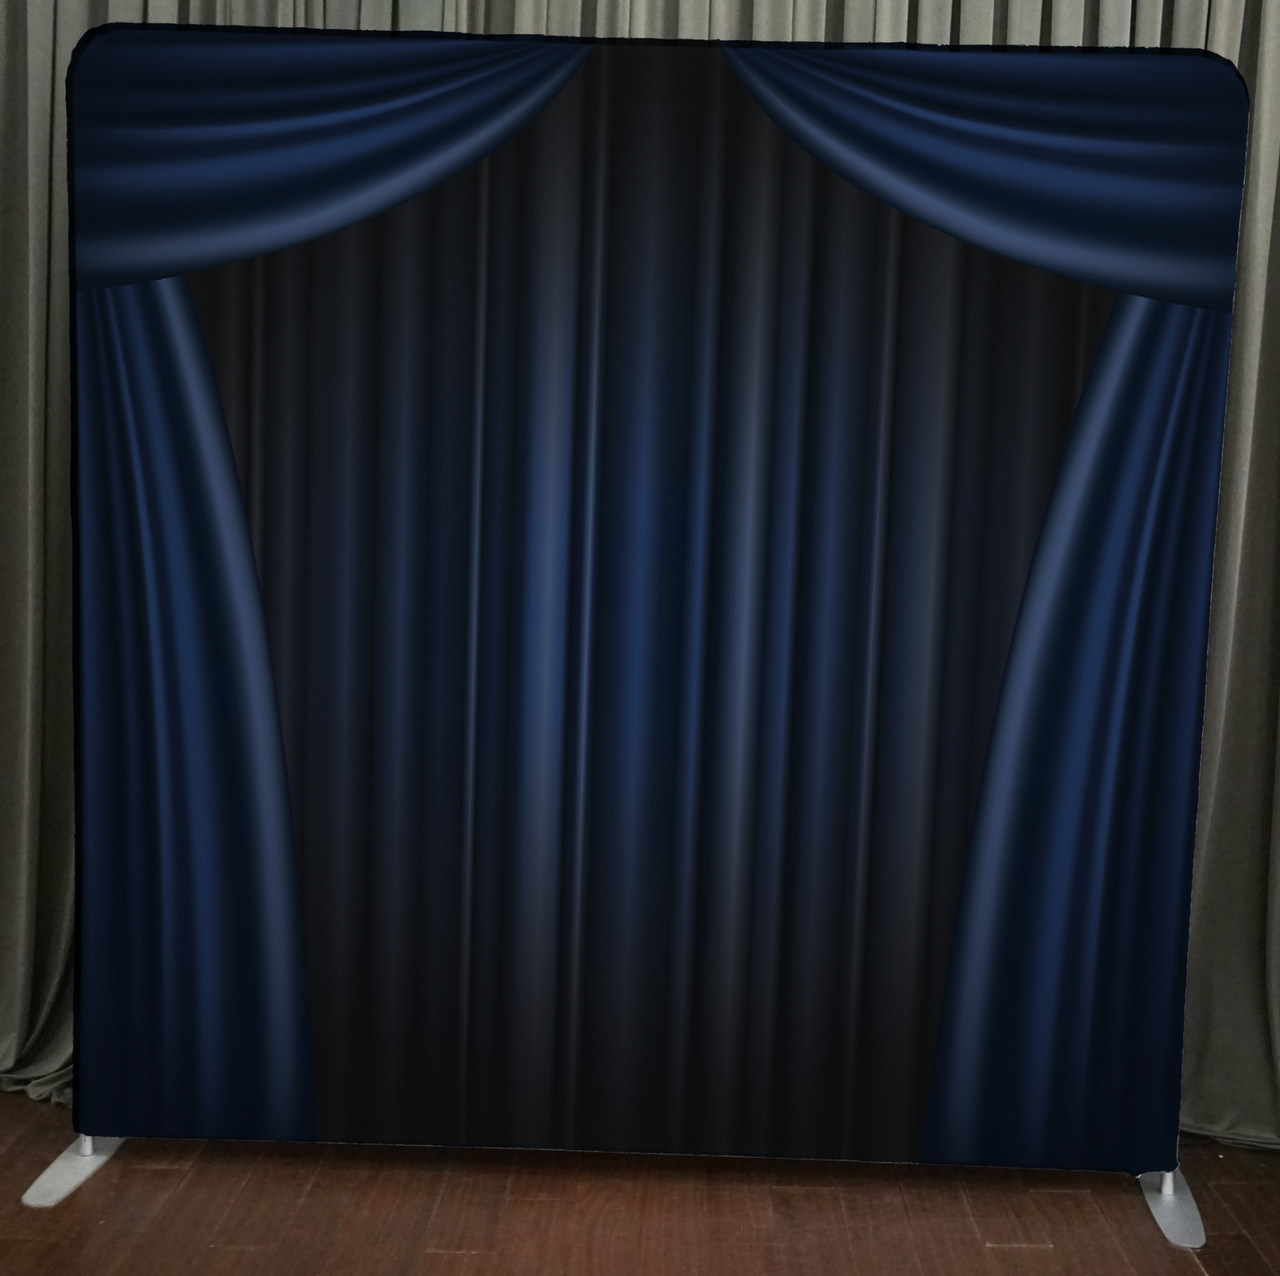 Stand_2_-_Blue_Curtain__09776.1471303934